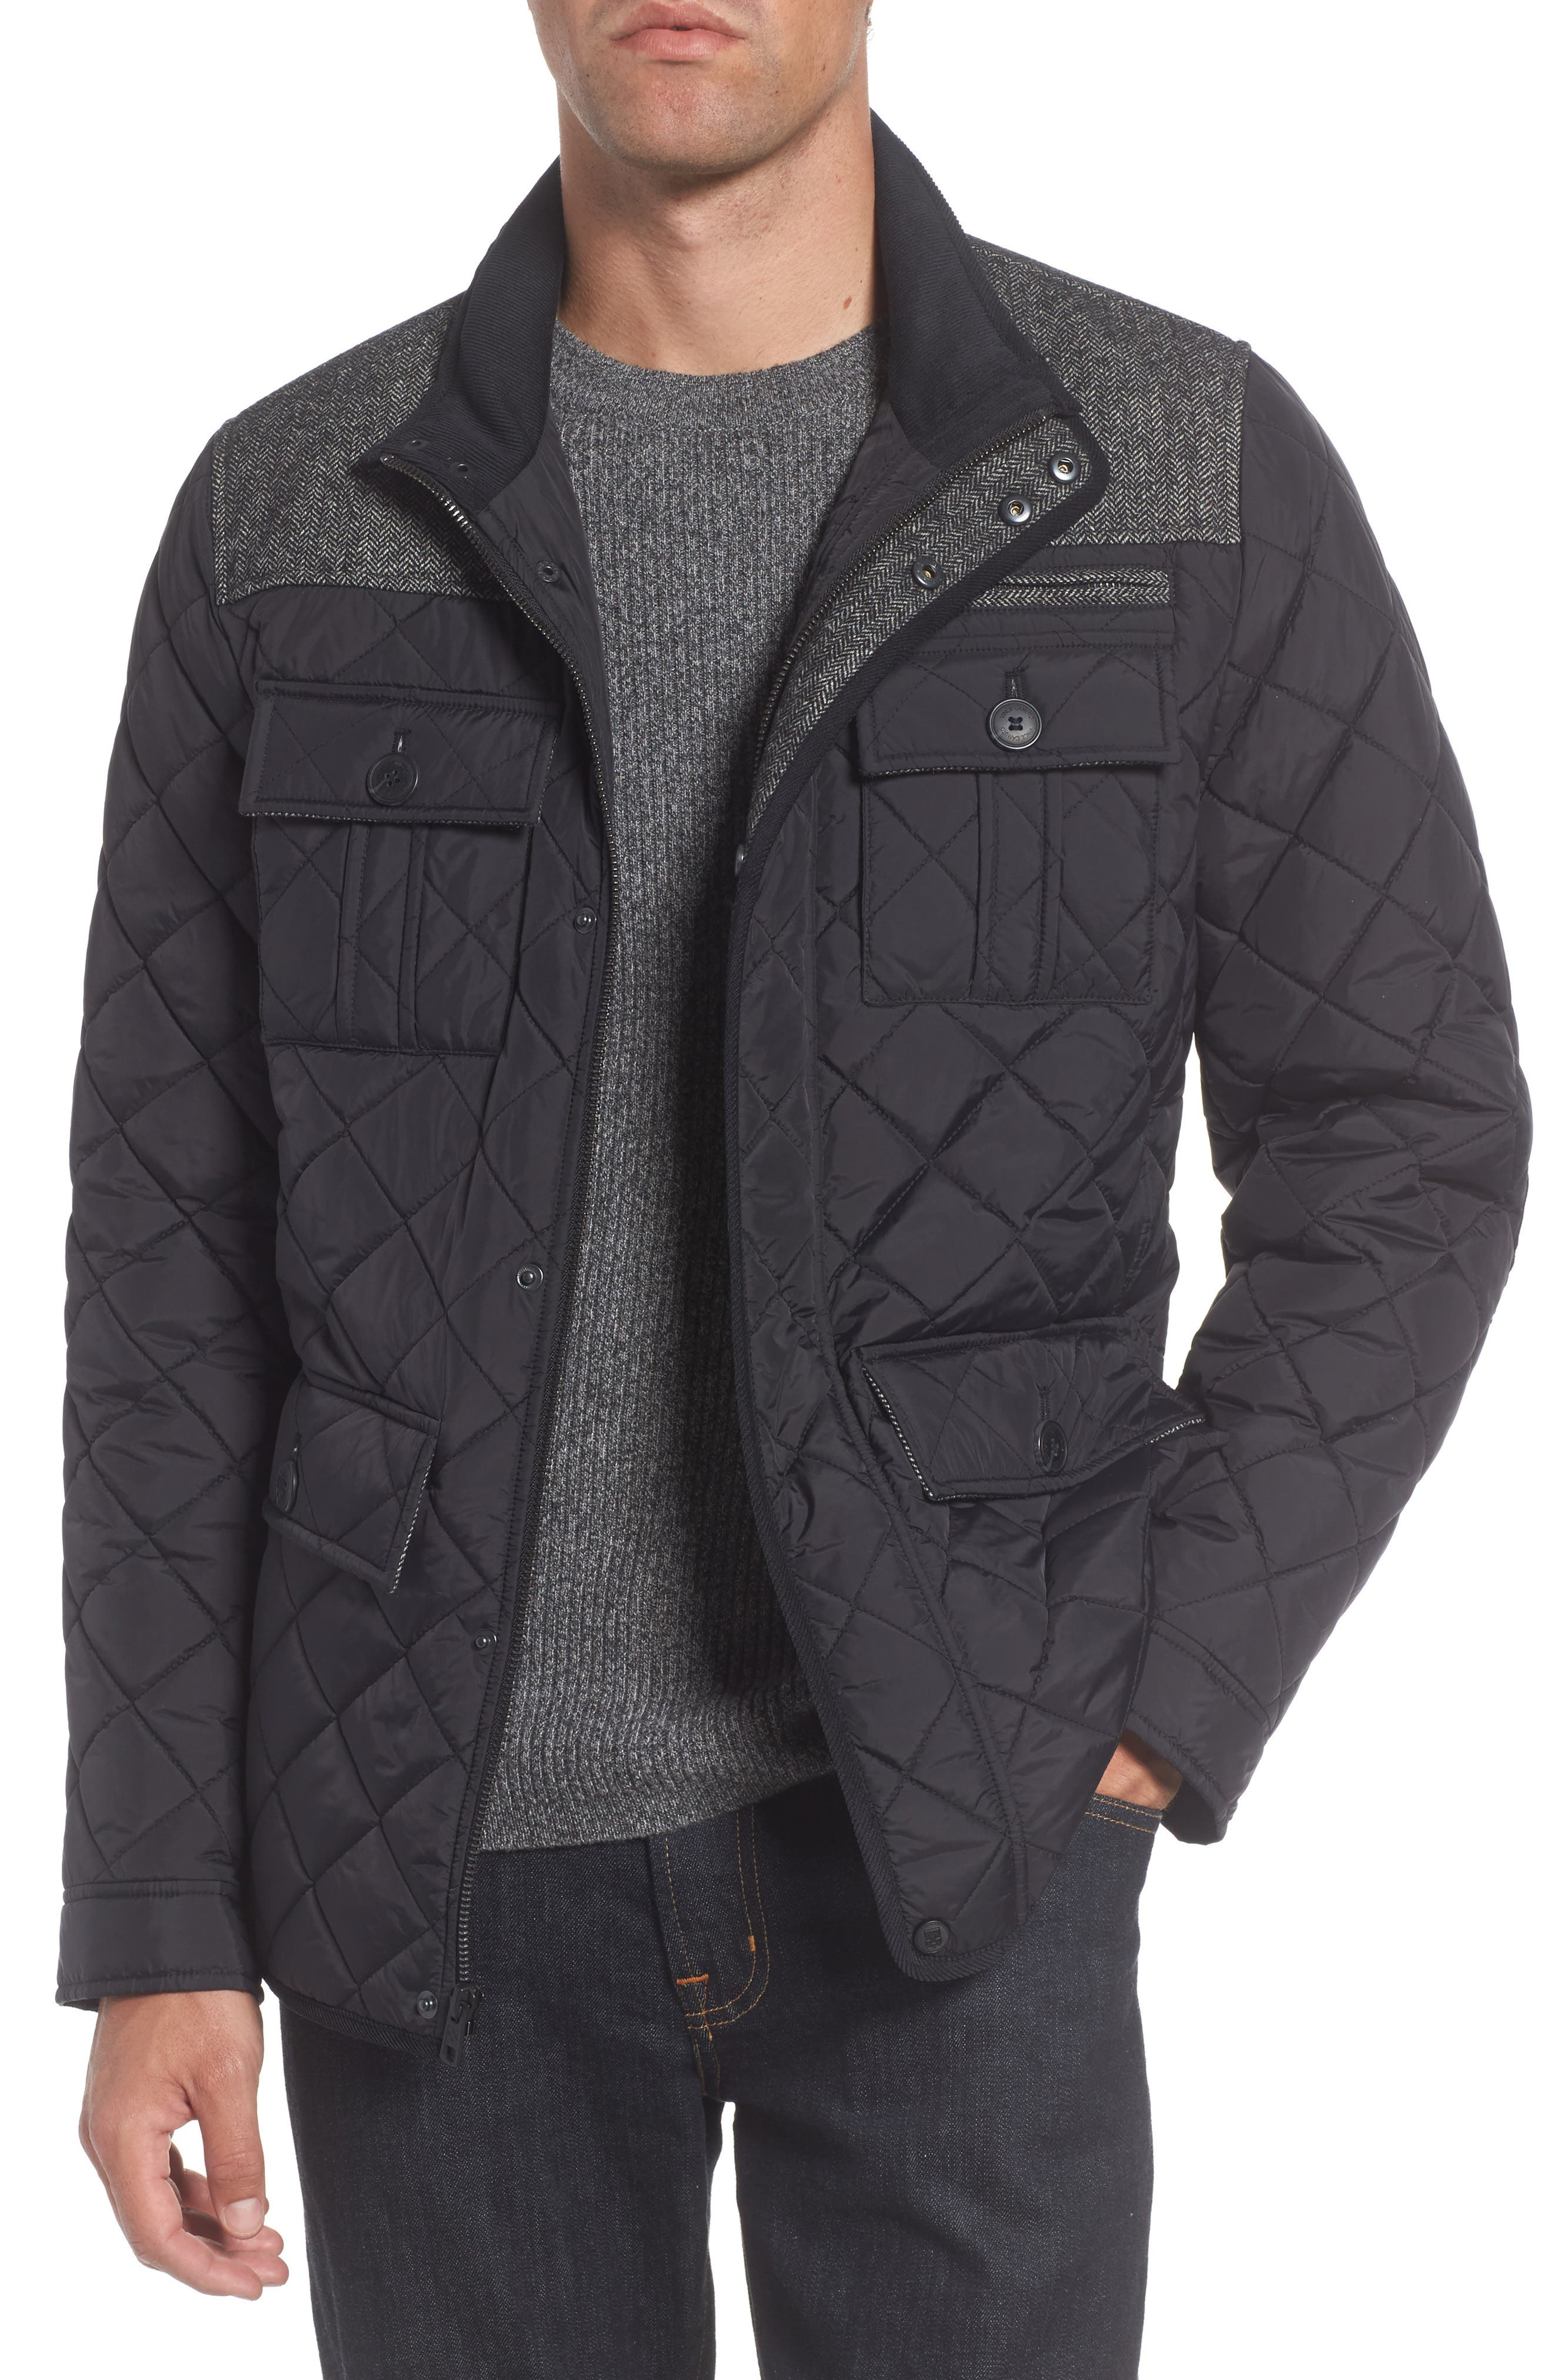 Vince Camuto Diamond Quilted Full Zip Jacket, Black